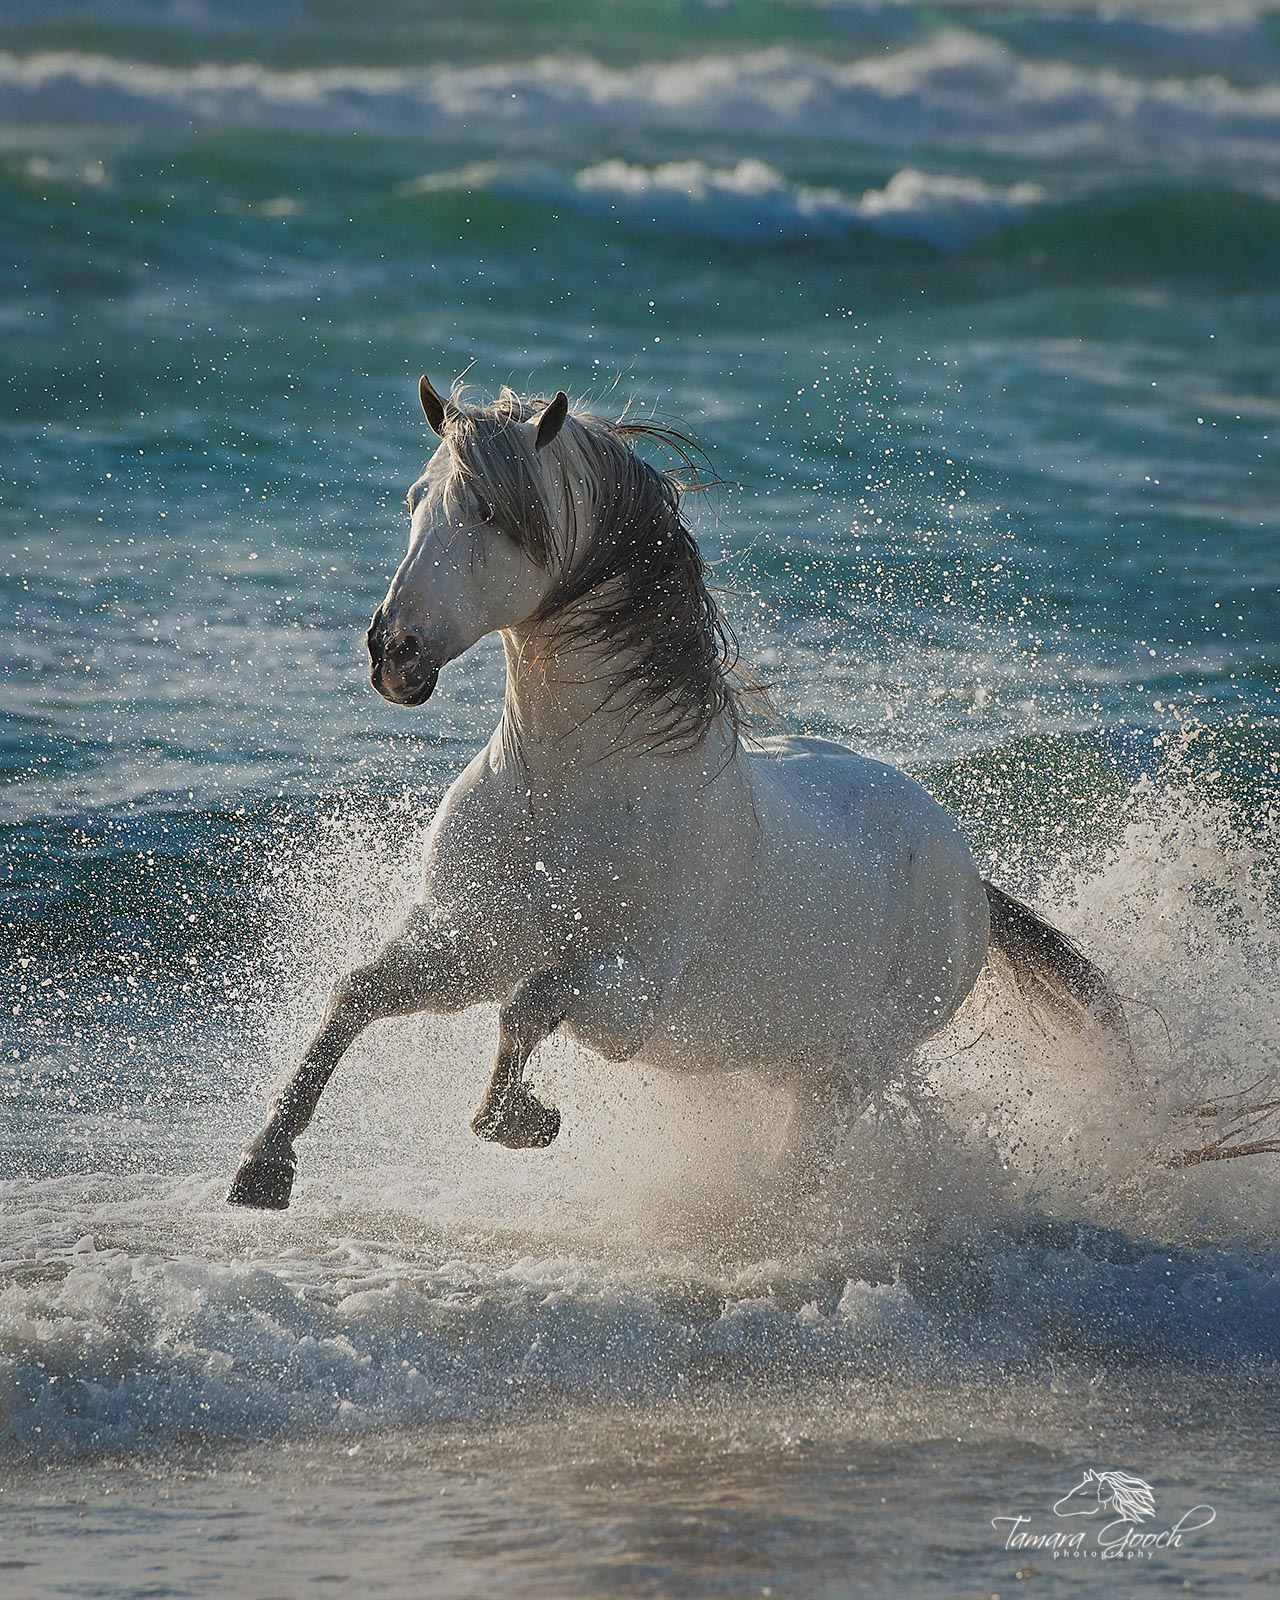 A photo of an andalusian, PRE stallion at liberty in the ocean of Mexico.